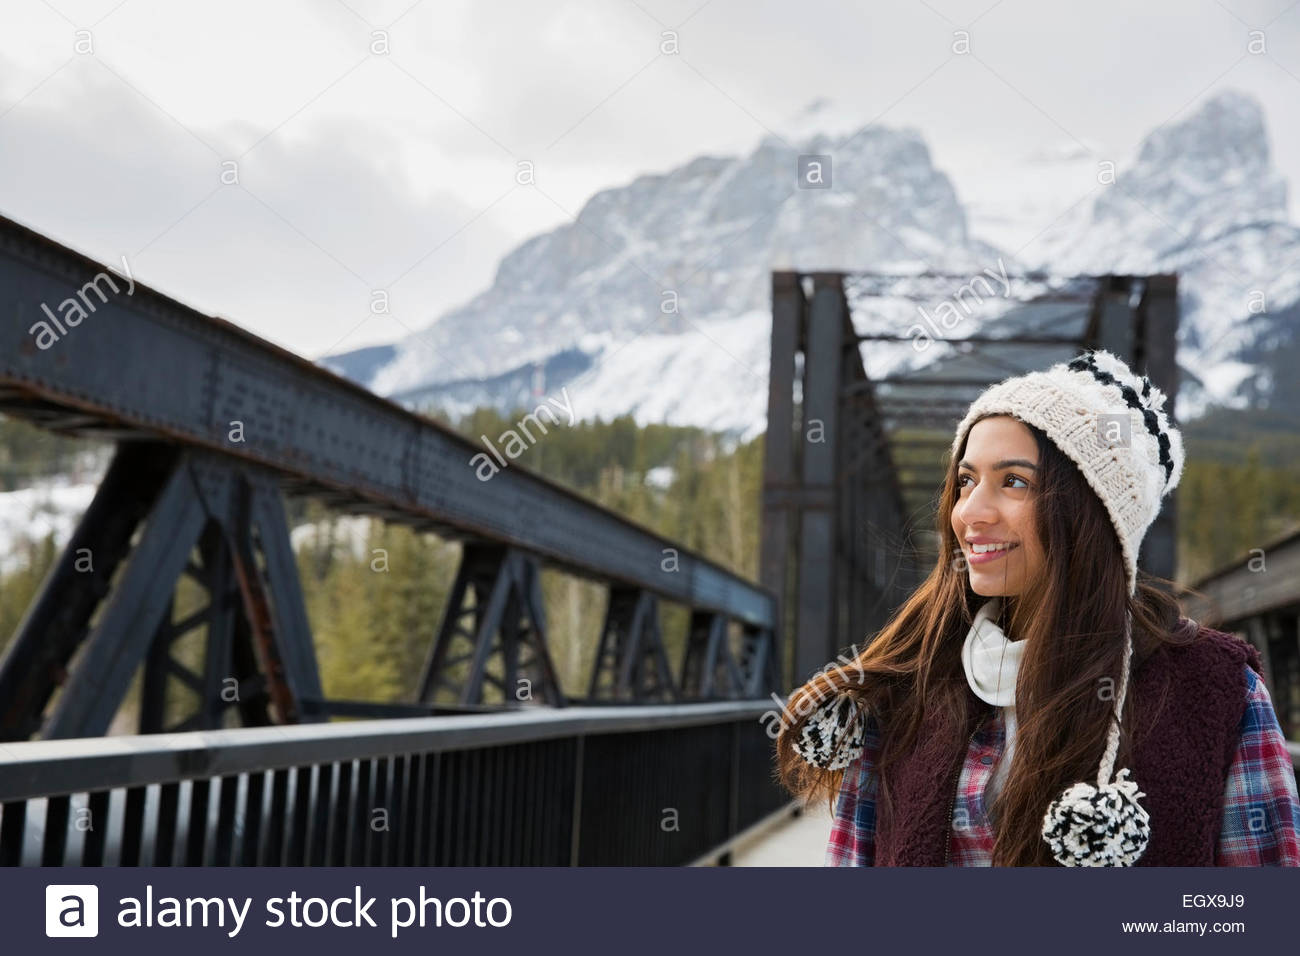 Smiling teenage girl sur le pont au-dessous des montagnes enneigées Photo Stock